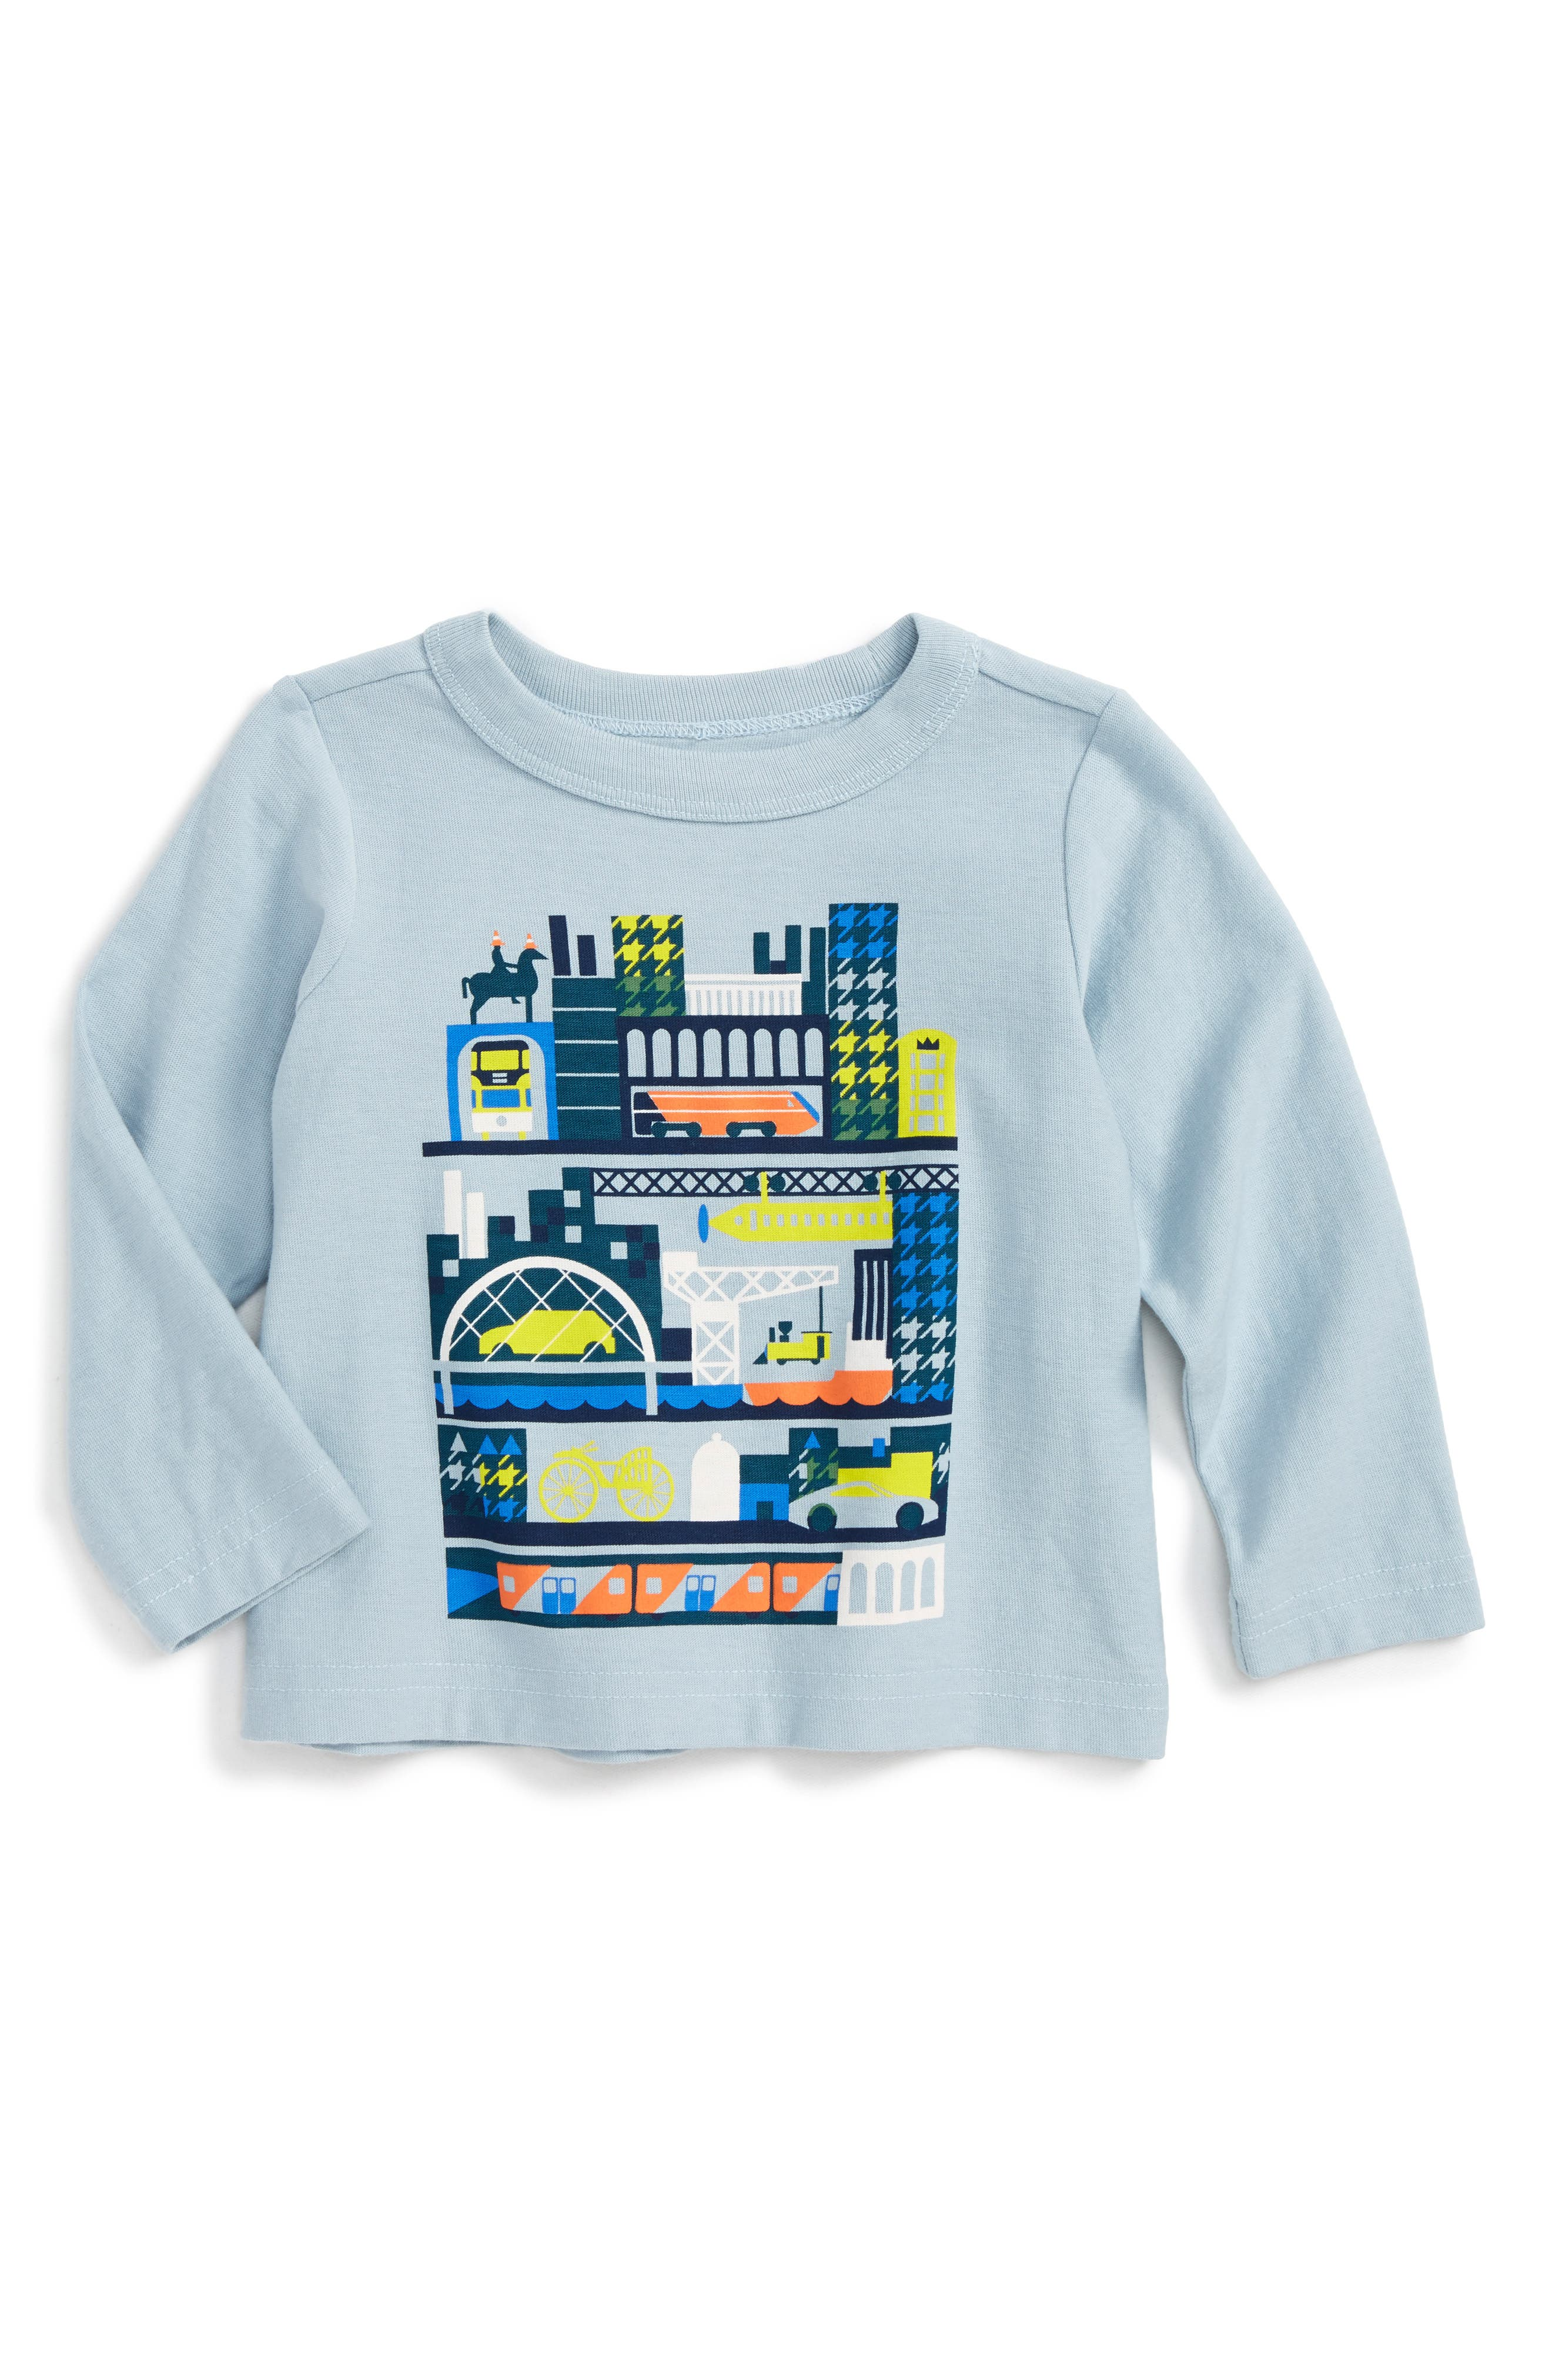 Tea Collection Glasgow Tour Graphic T-Shirt (Baby Boys)